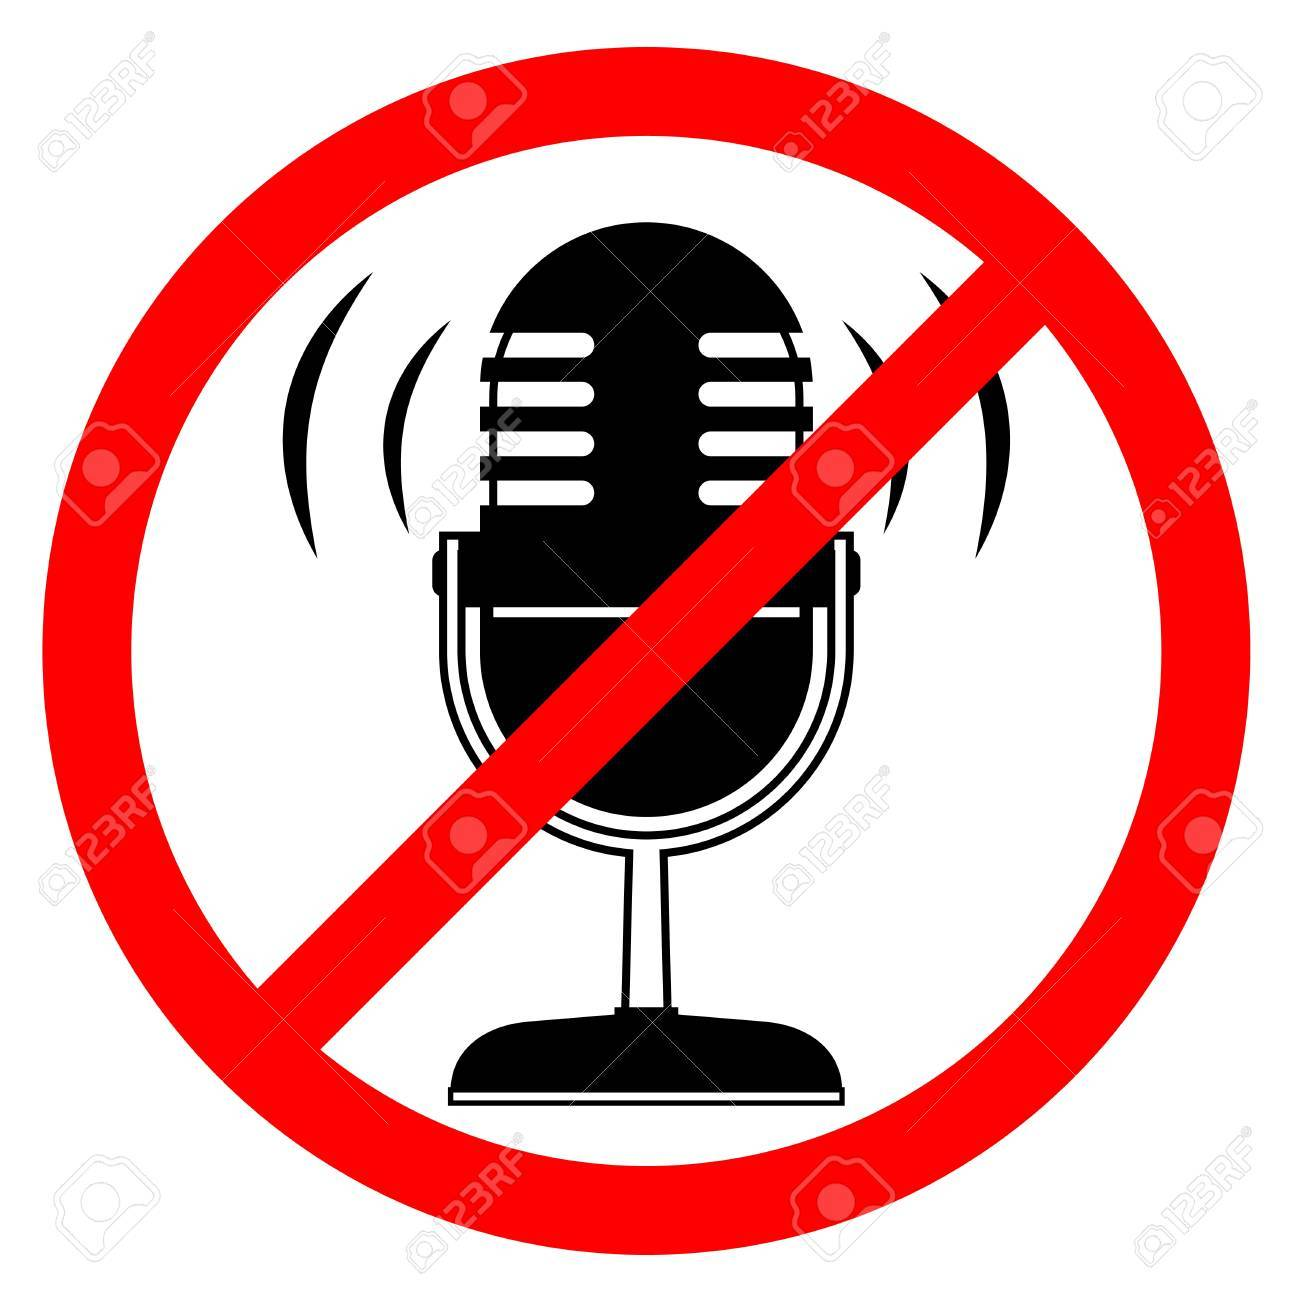 No sound Stock Vector - 16974130